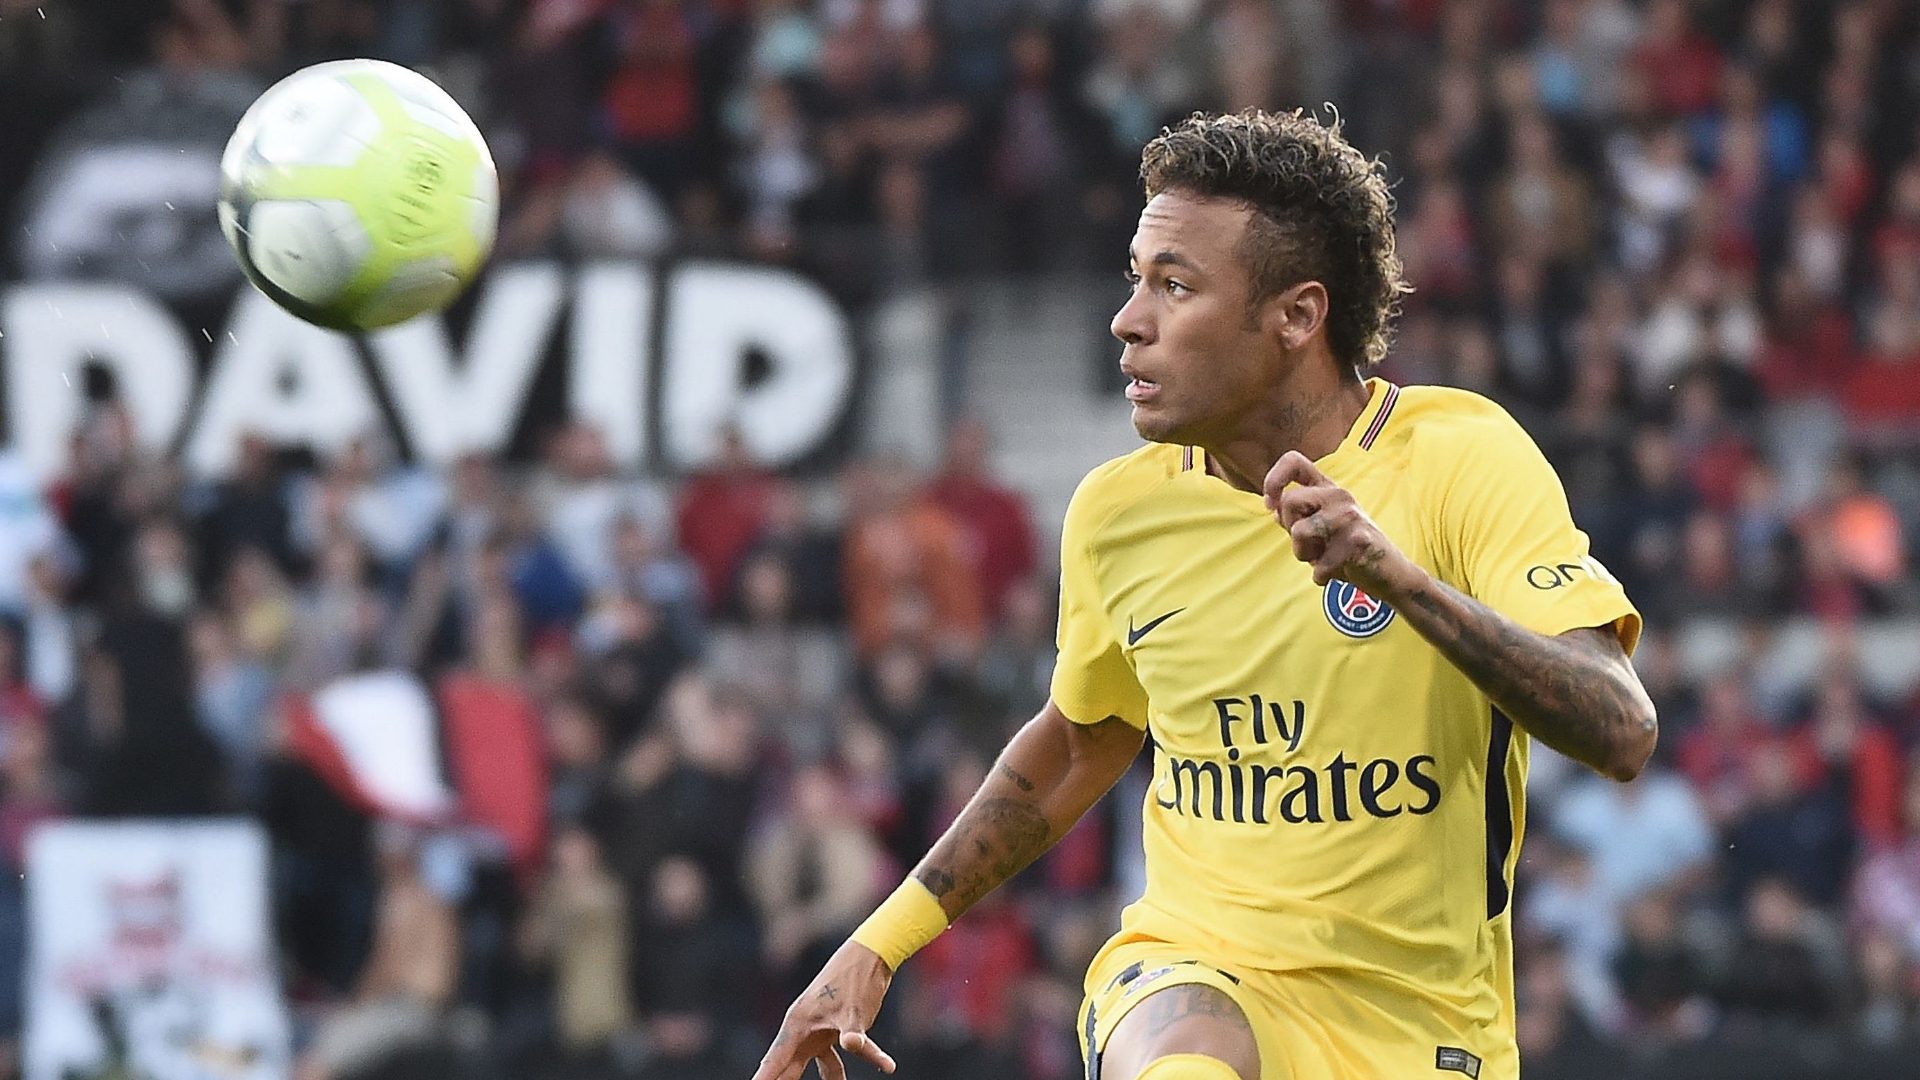 Neymar scores goal for PSG in opening game